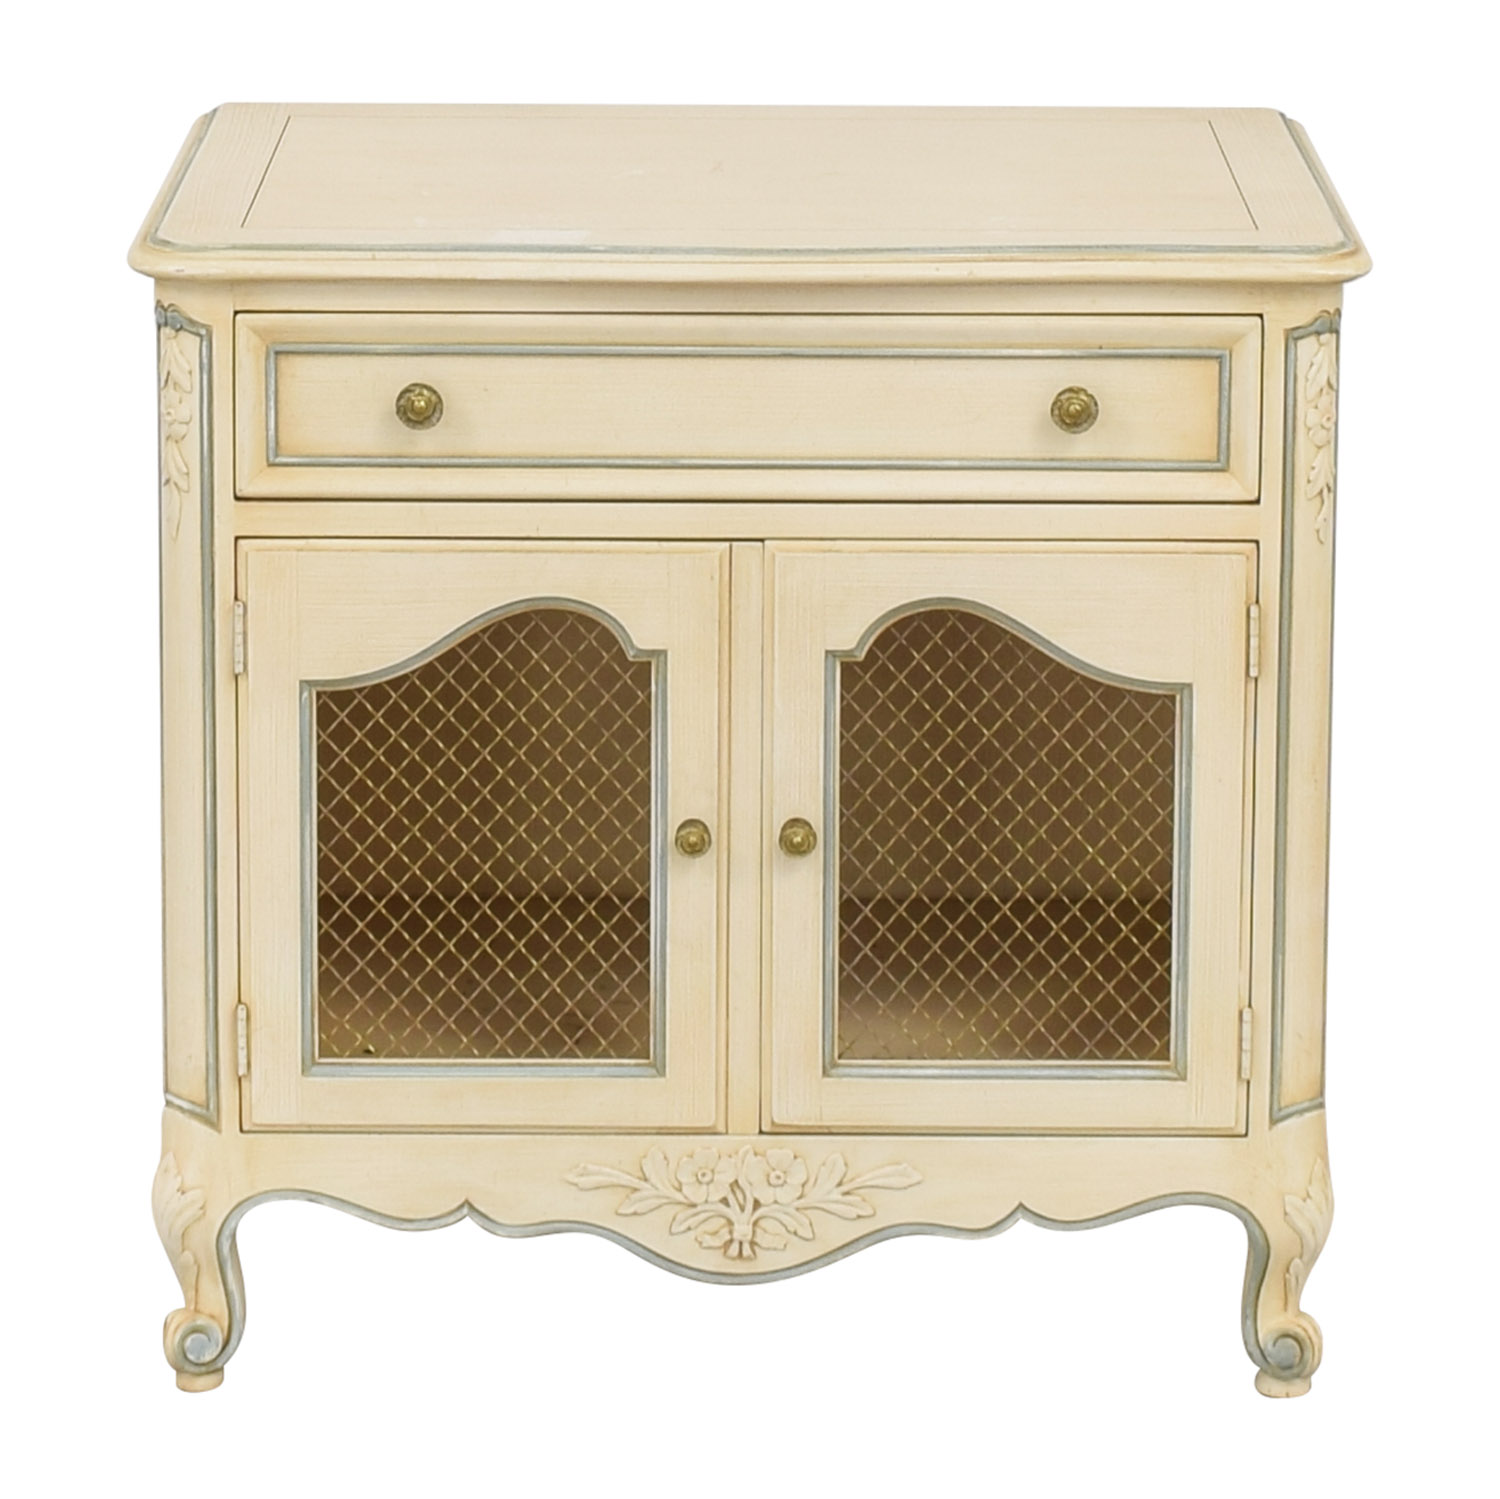 Kindel Kindel Vintage French Provincial Nightstand discount